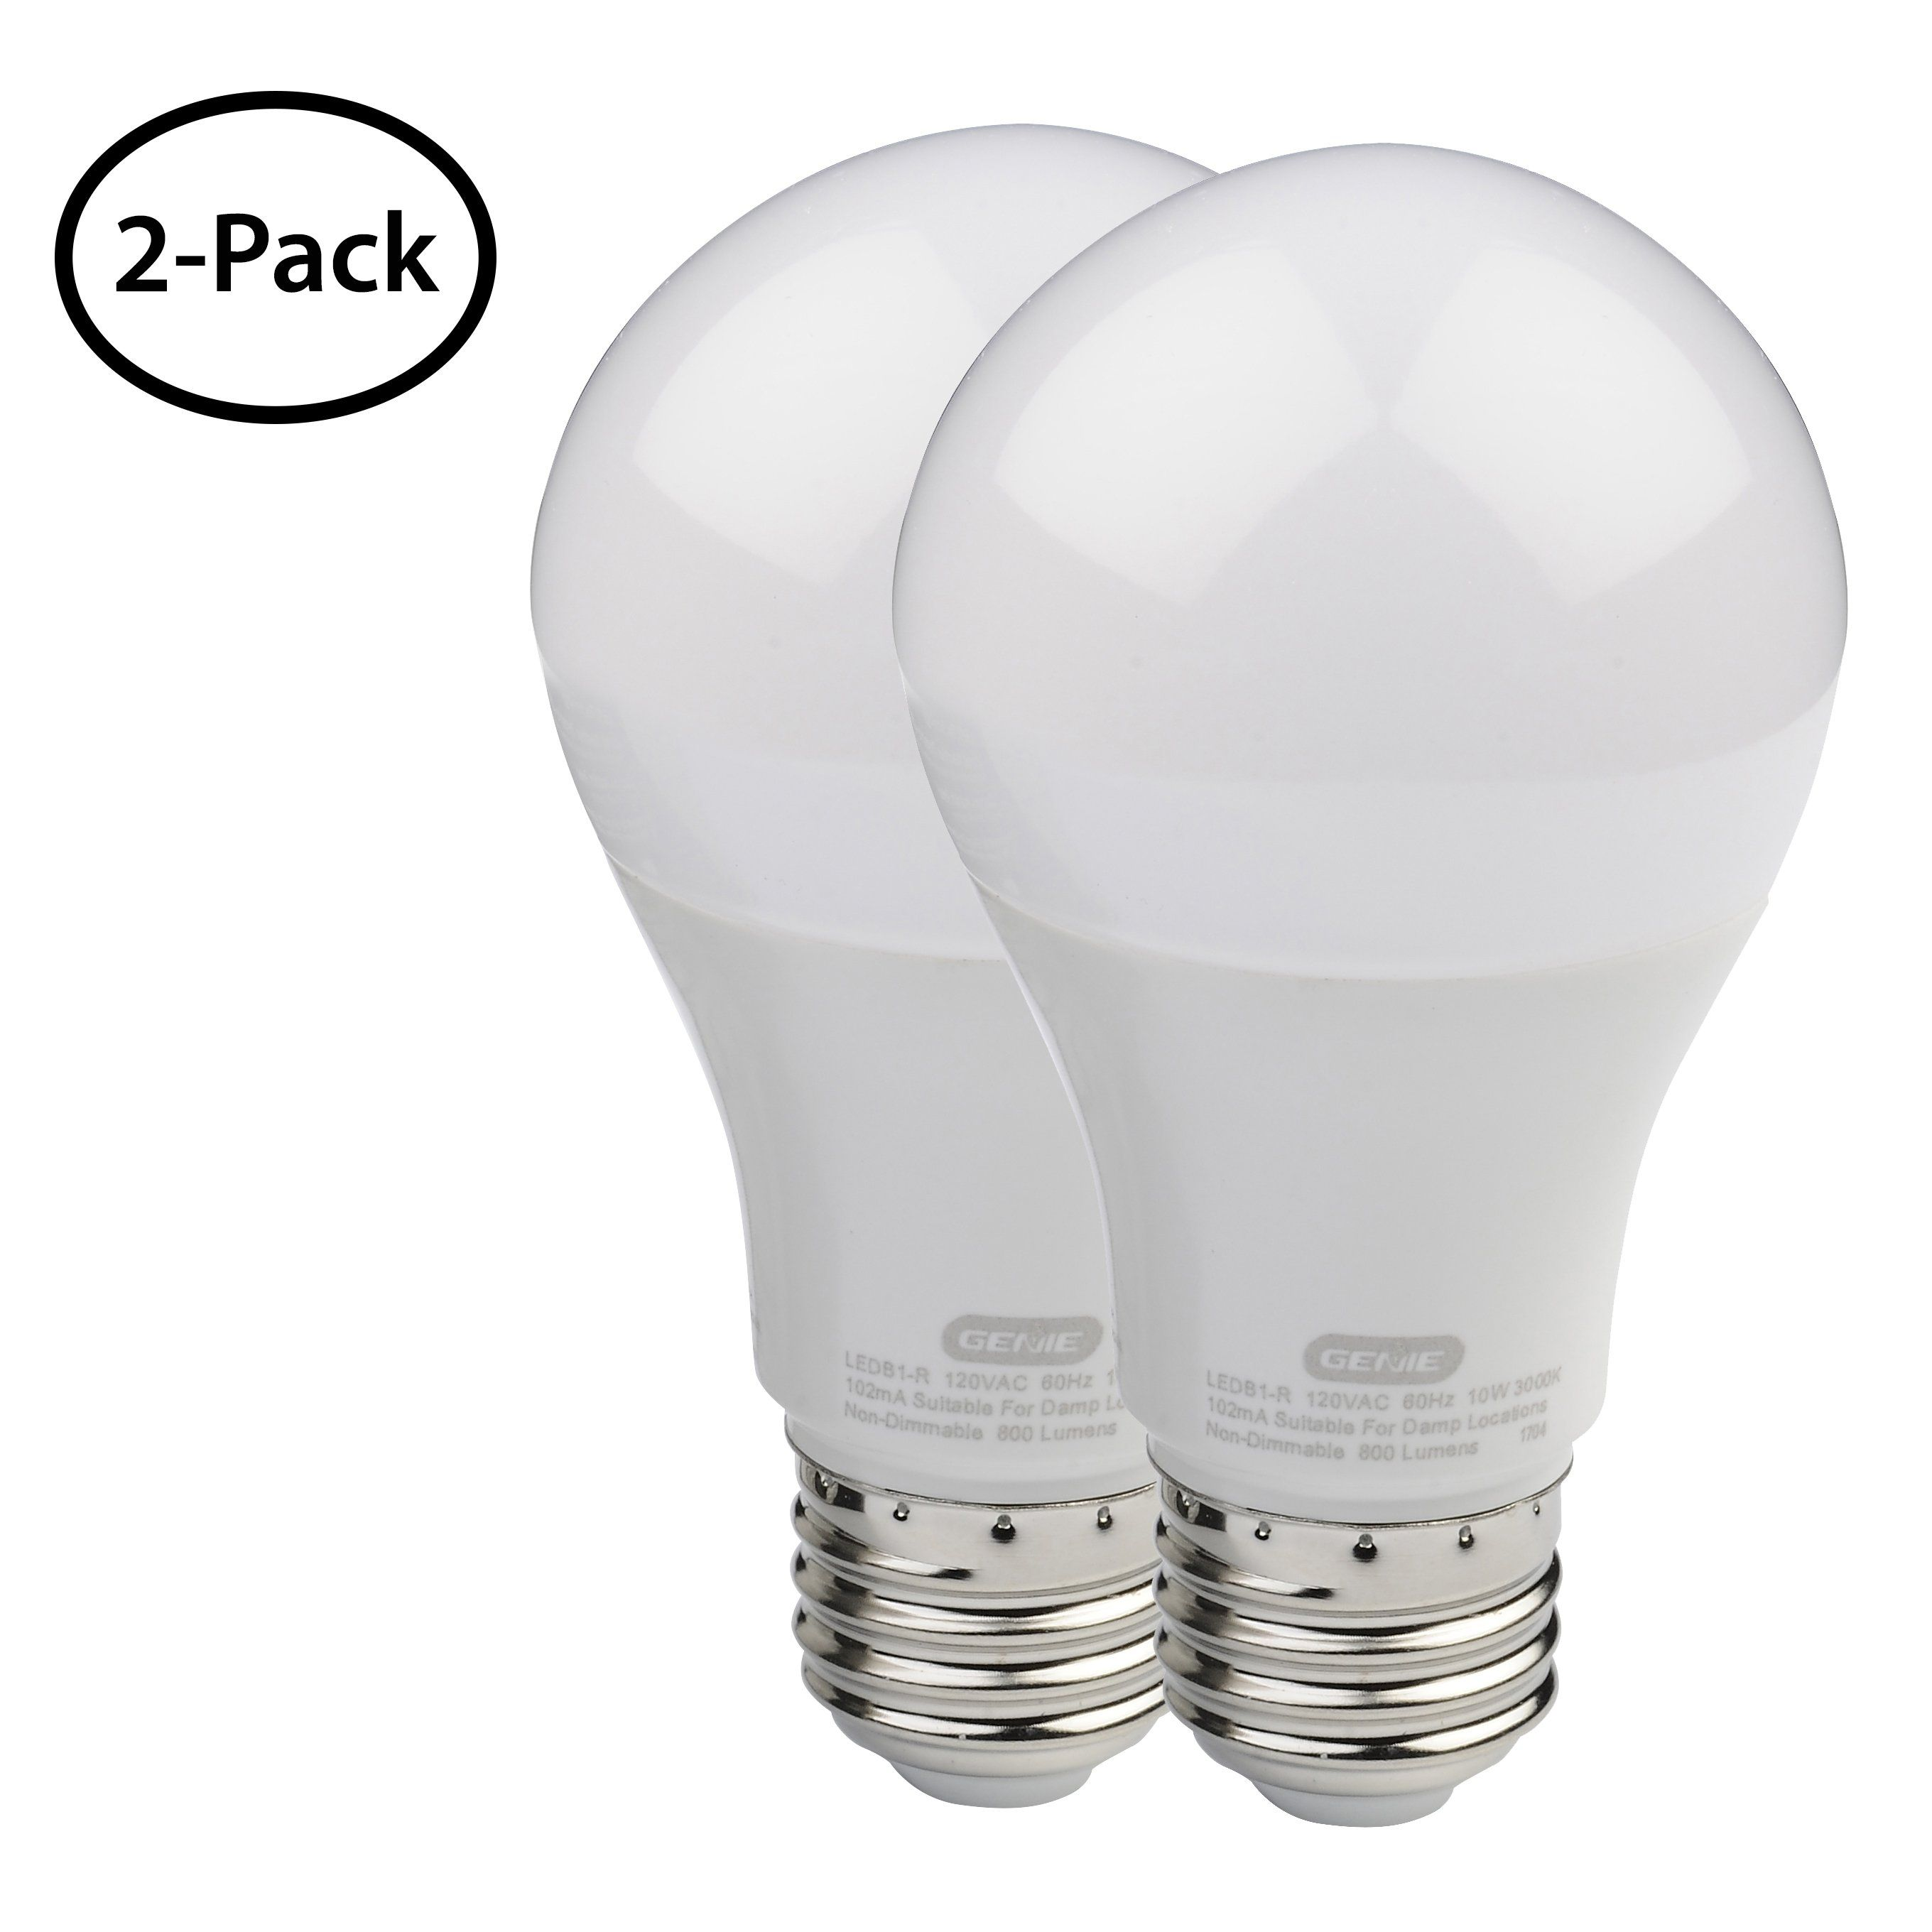 2 Pack Led Garage Door Opener Light Bulb Garage Door Opener